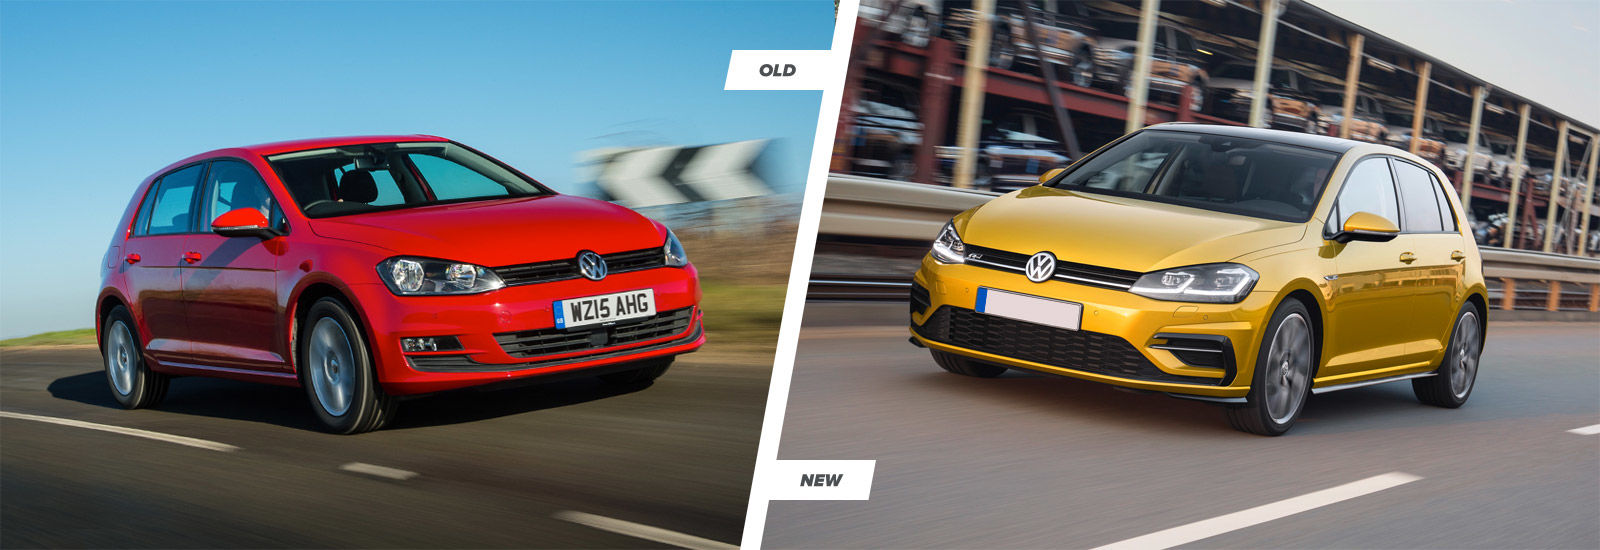 2017 vw golf mk7 facelift old vs new engines and driving